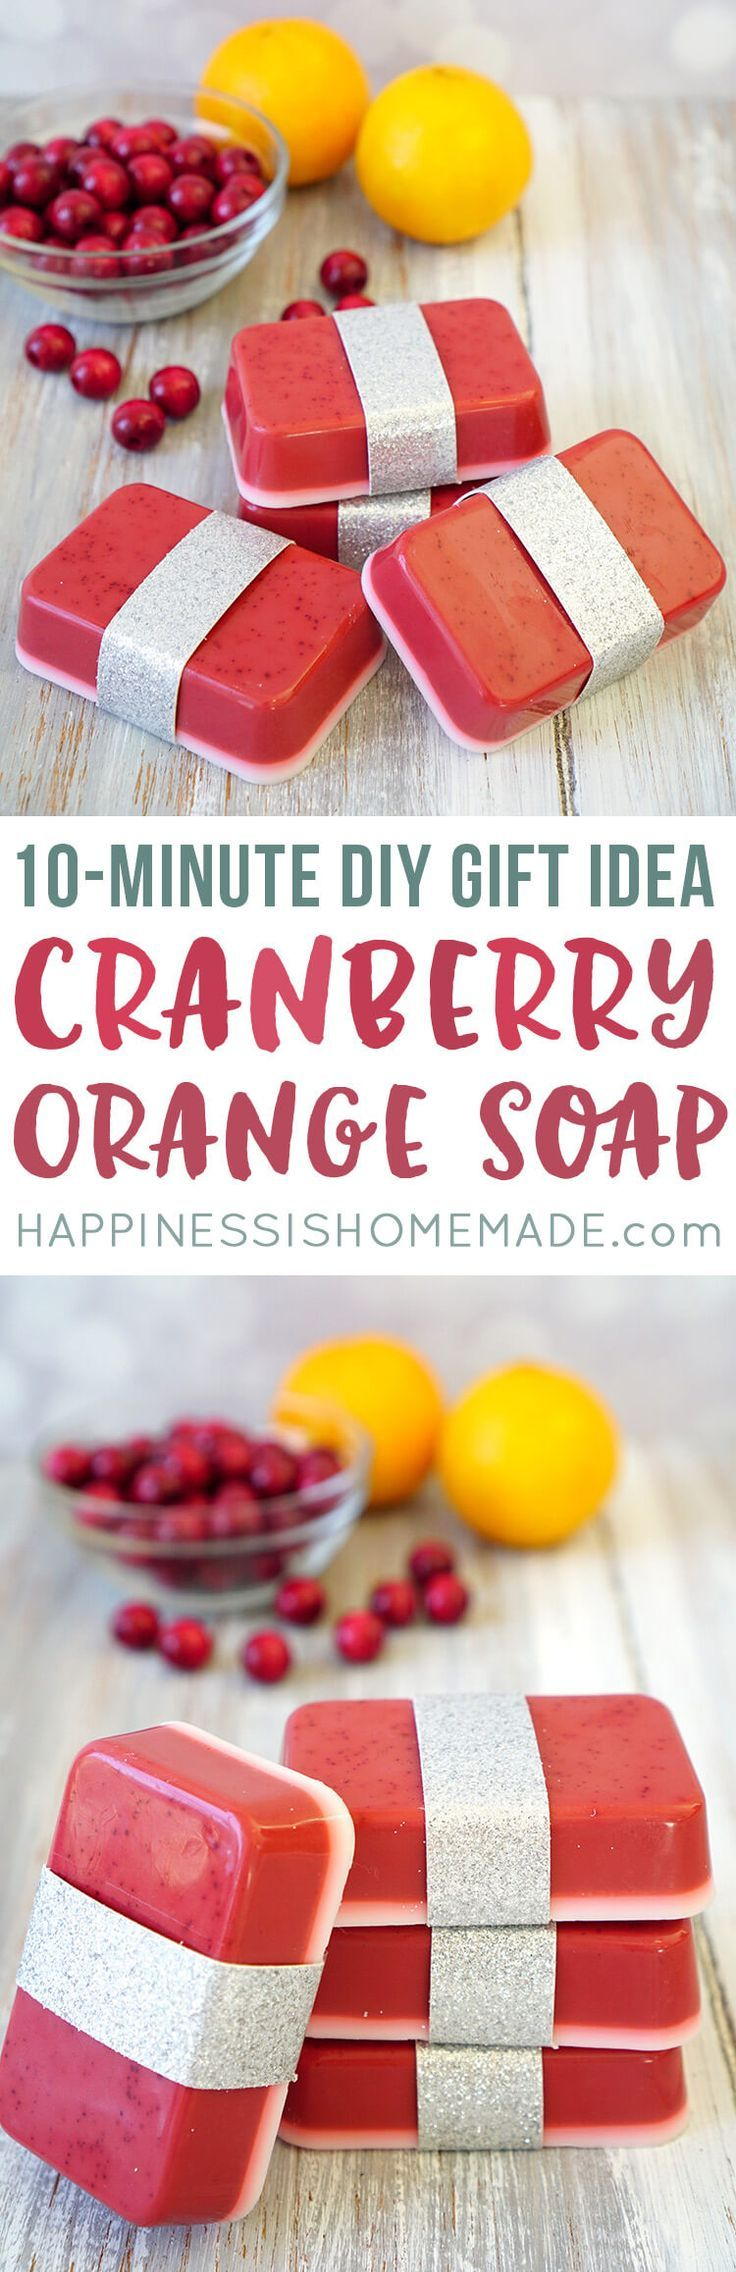 This Cranberry Orange Soap smells delicious, and you can whip up a batch in just a few minutes! Makes a great DIY homemade holiday gift idea that's perfect for friends, family, neighbors, and teachers!